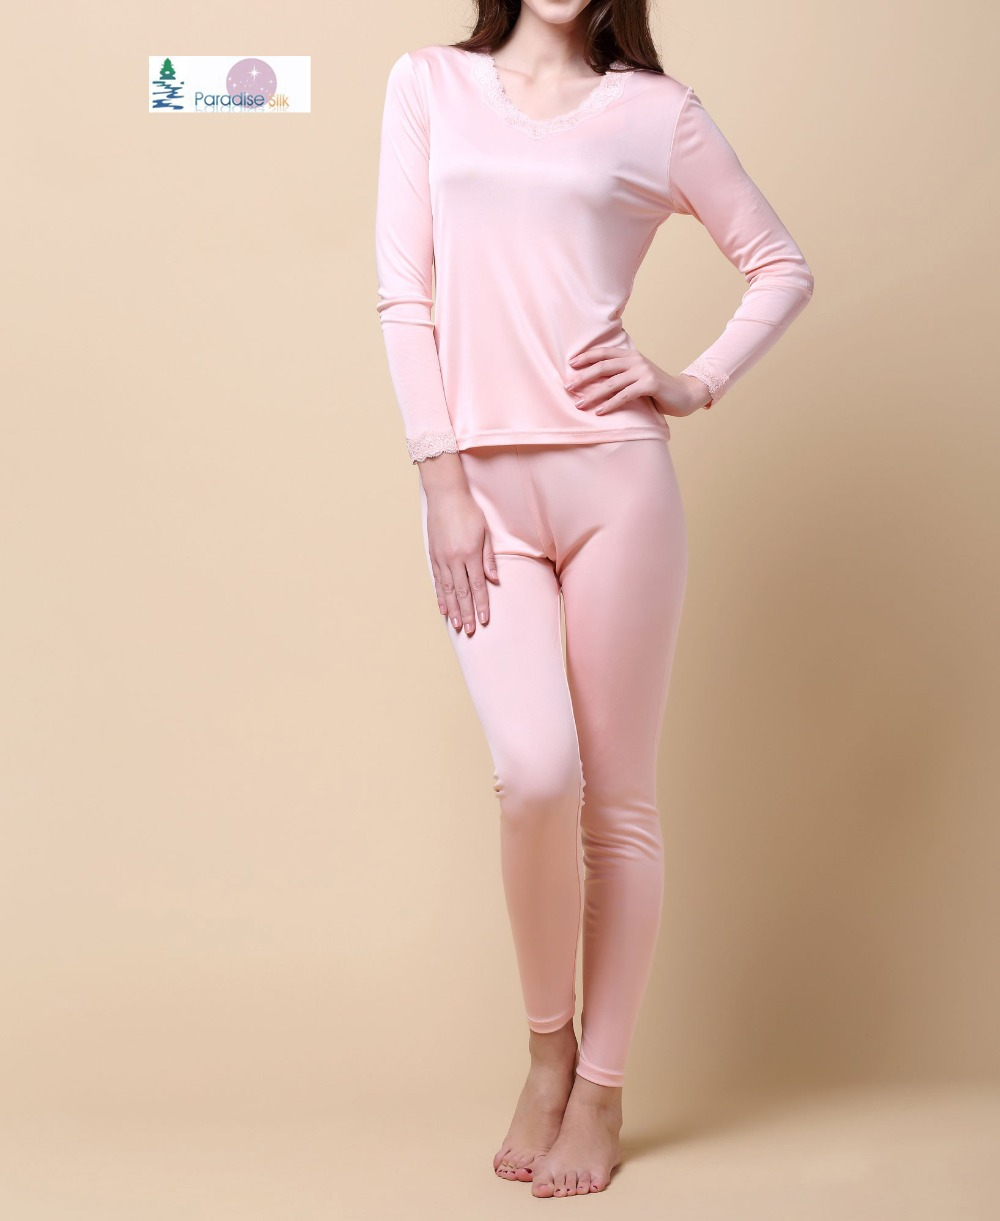 Women Long Johns 100% Pure Silk Knit Double Jersey Lace V Neckline Long Johns Set Thermal Underwear Set Size M L XL XXL